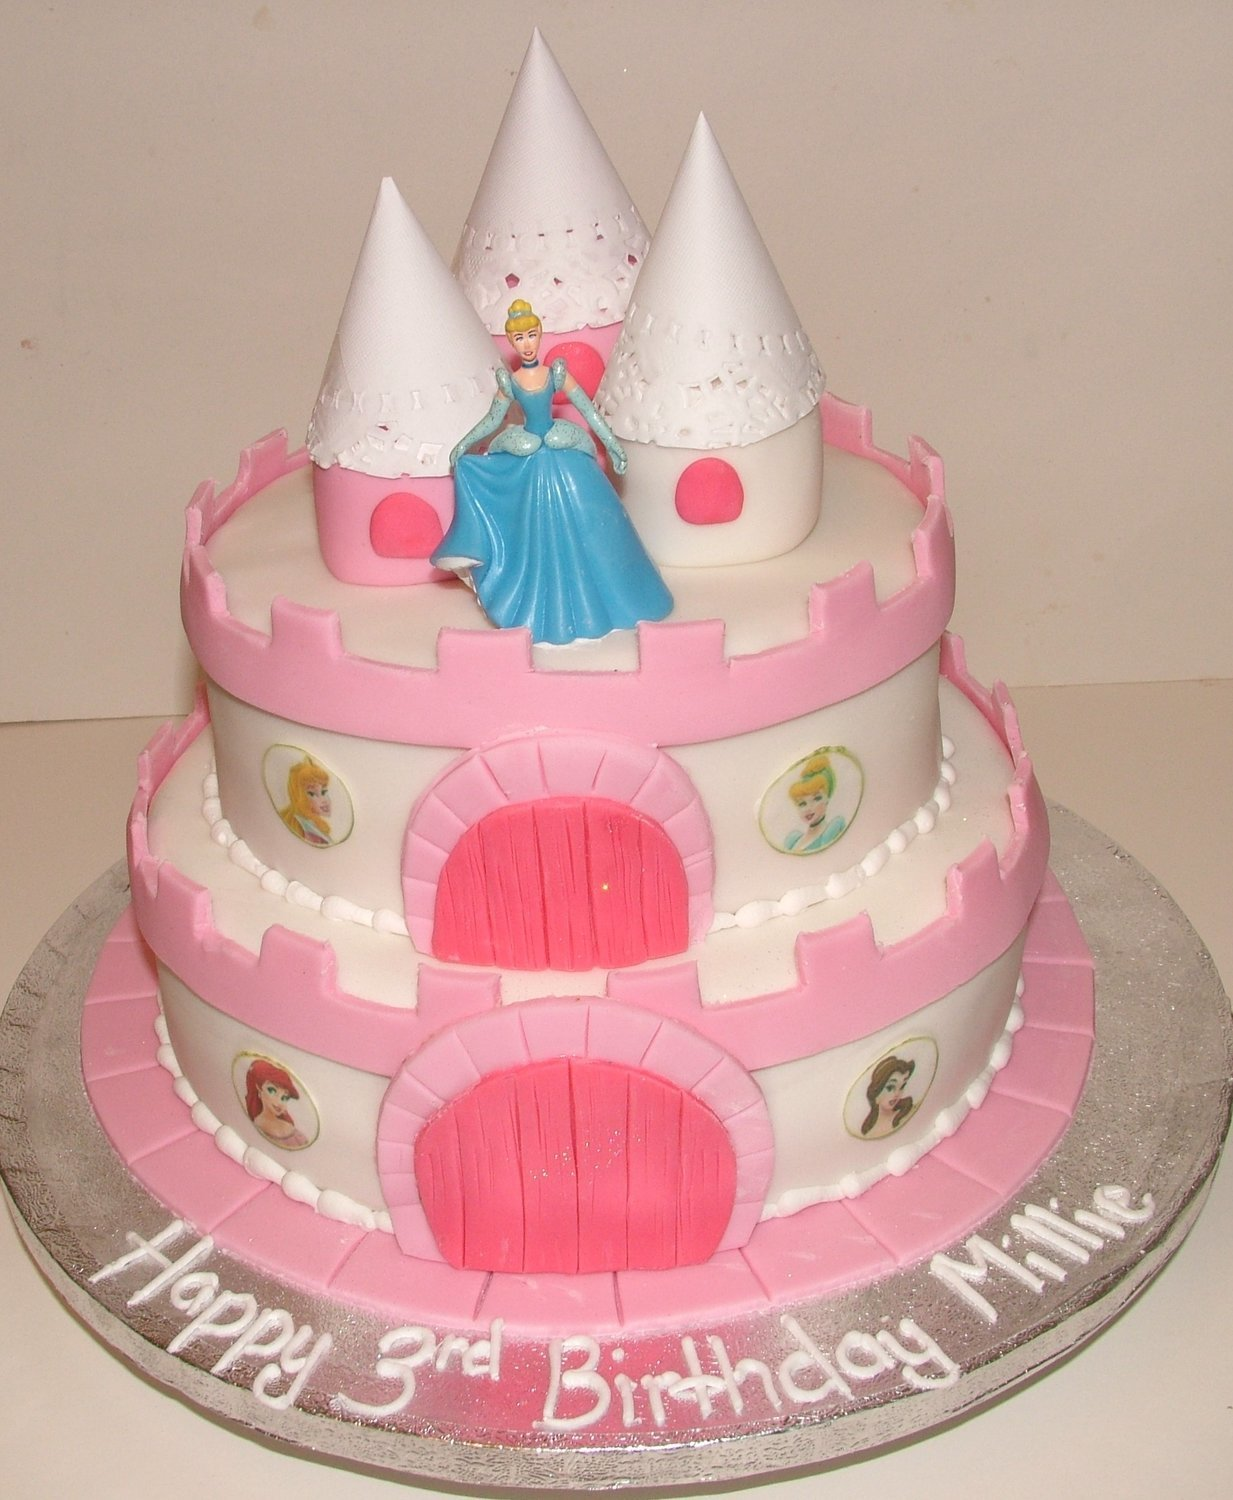 Two Tier Castle Cake with Towers and Princess